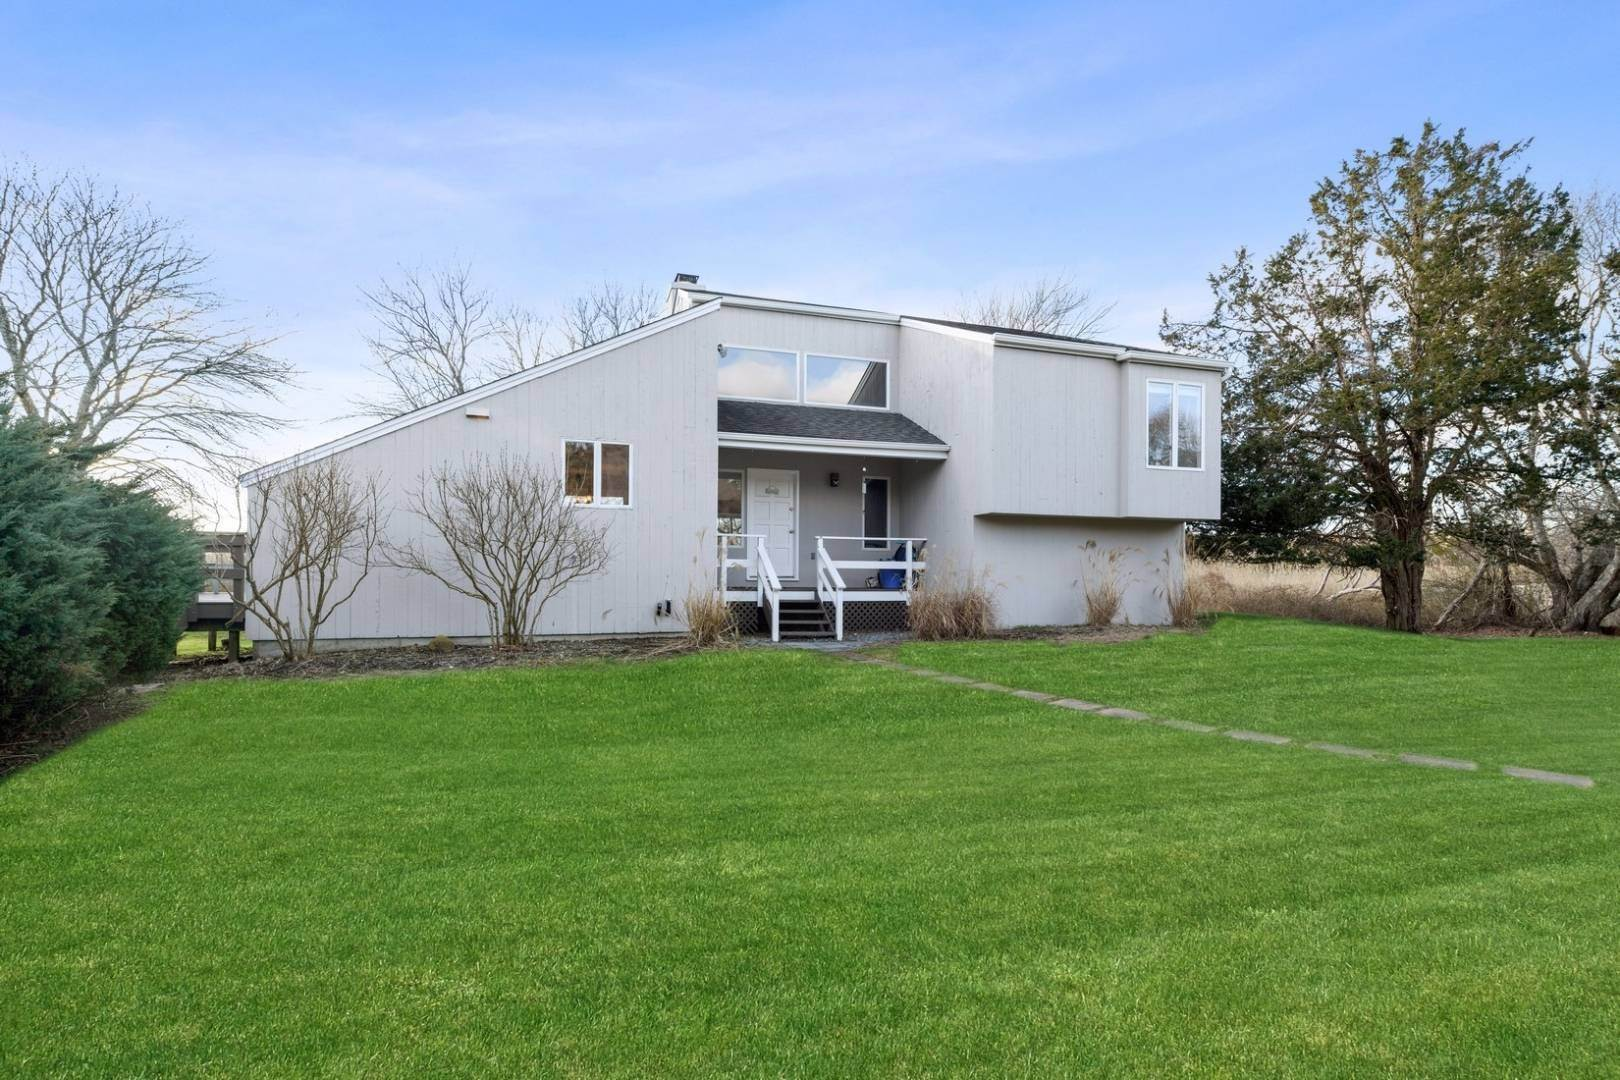 Single Family Home for Sale at Pond Front Contemporary In Remsenburg 19 Rogers Lane, Remsenburg, NY 11960